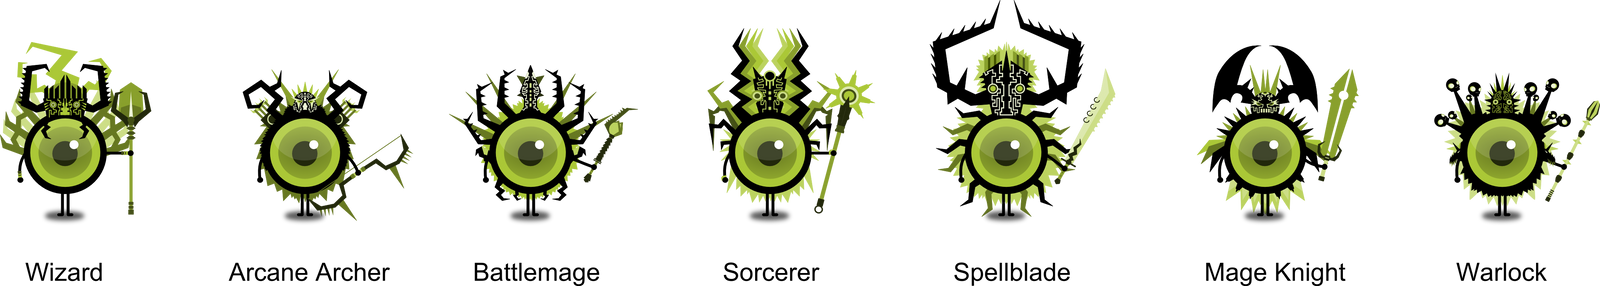 Eyeball Class Set 3 by NightBladeN